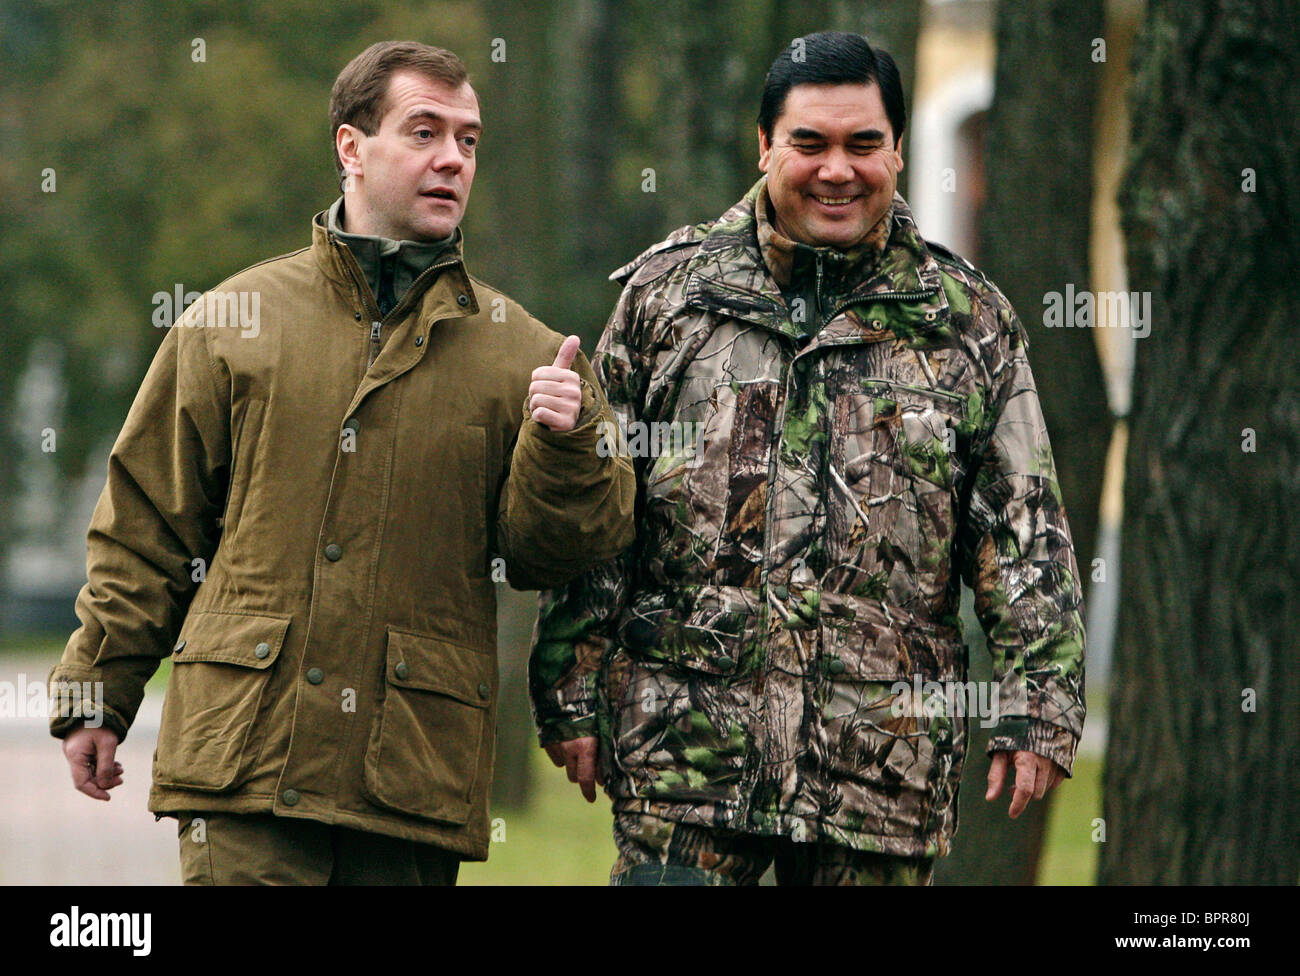 Turkmenistan's President visits Russia - Stock Image